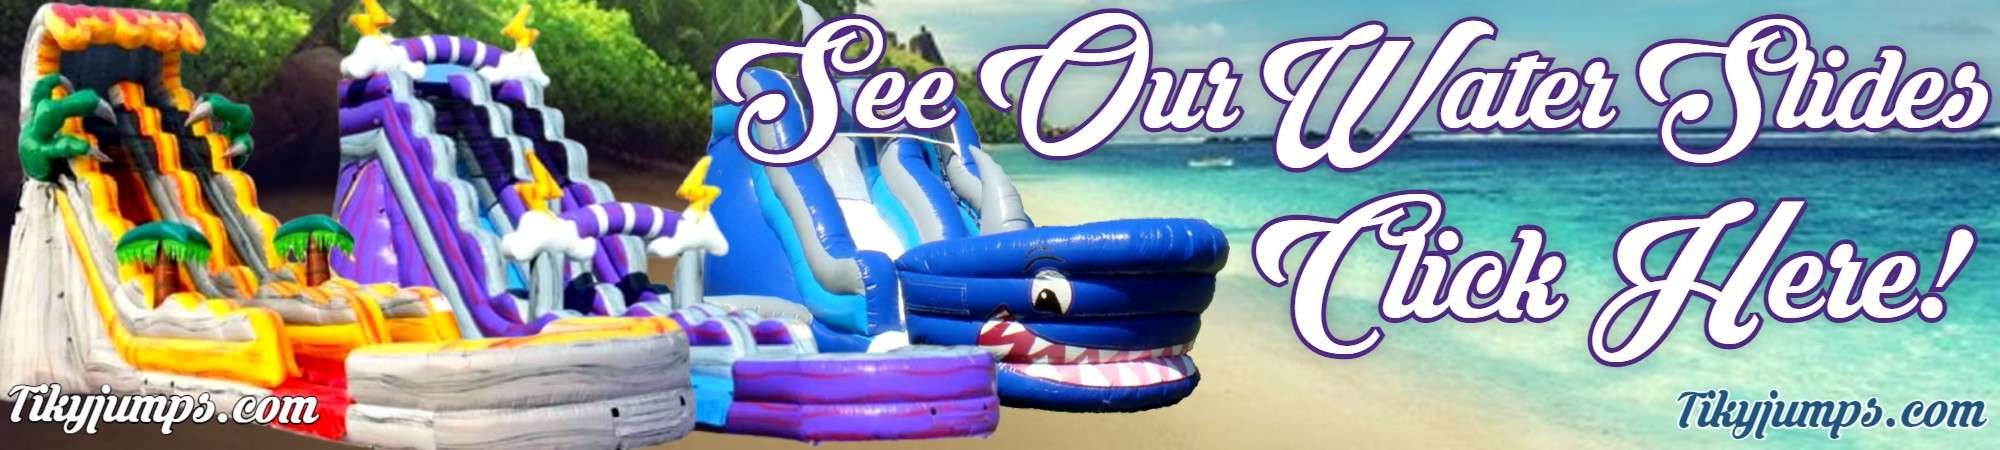 Memphis Water Slide Rent